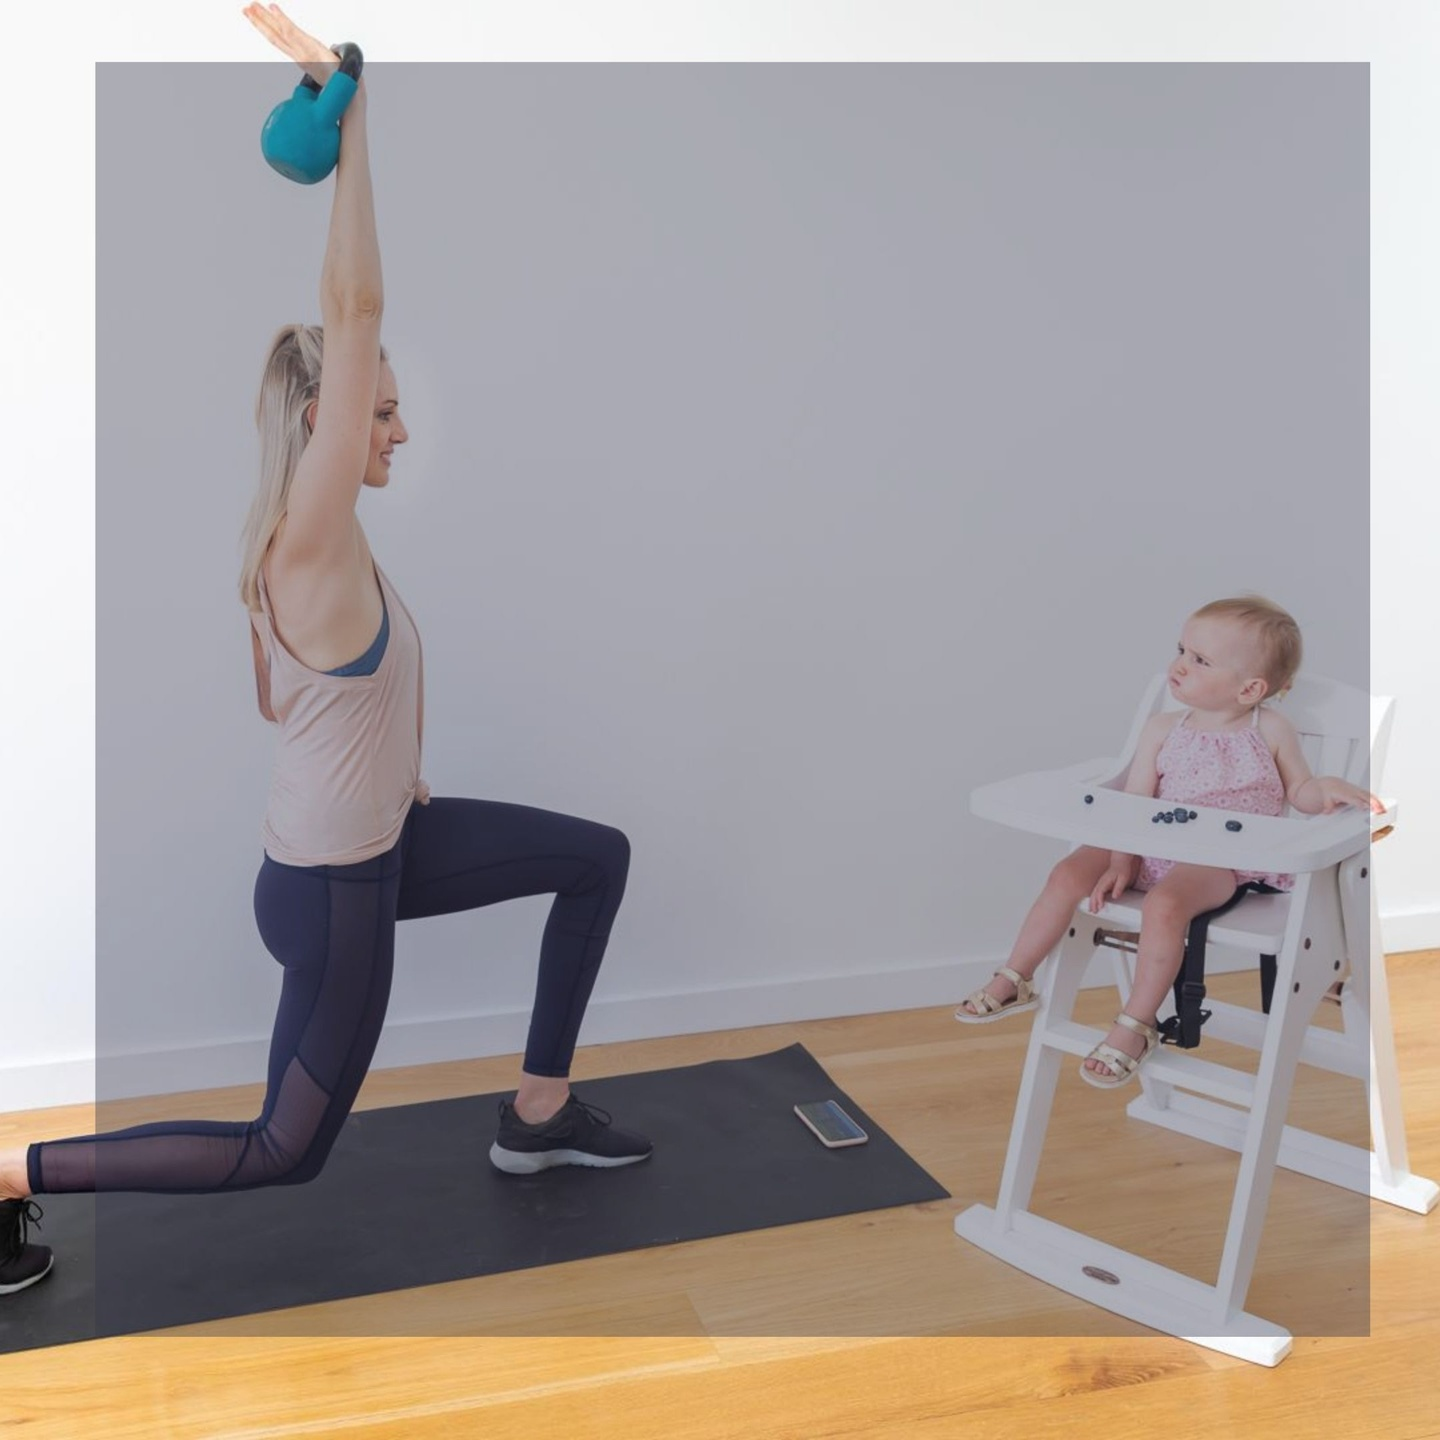 c-section birth recovery, best postnatal exercise, best online postpartum workouts, physio workouts, pelvic floor exercises after birth